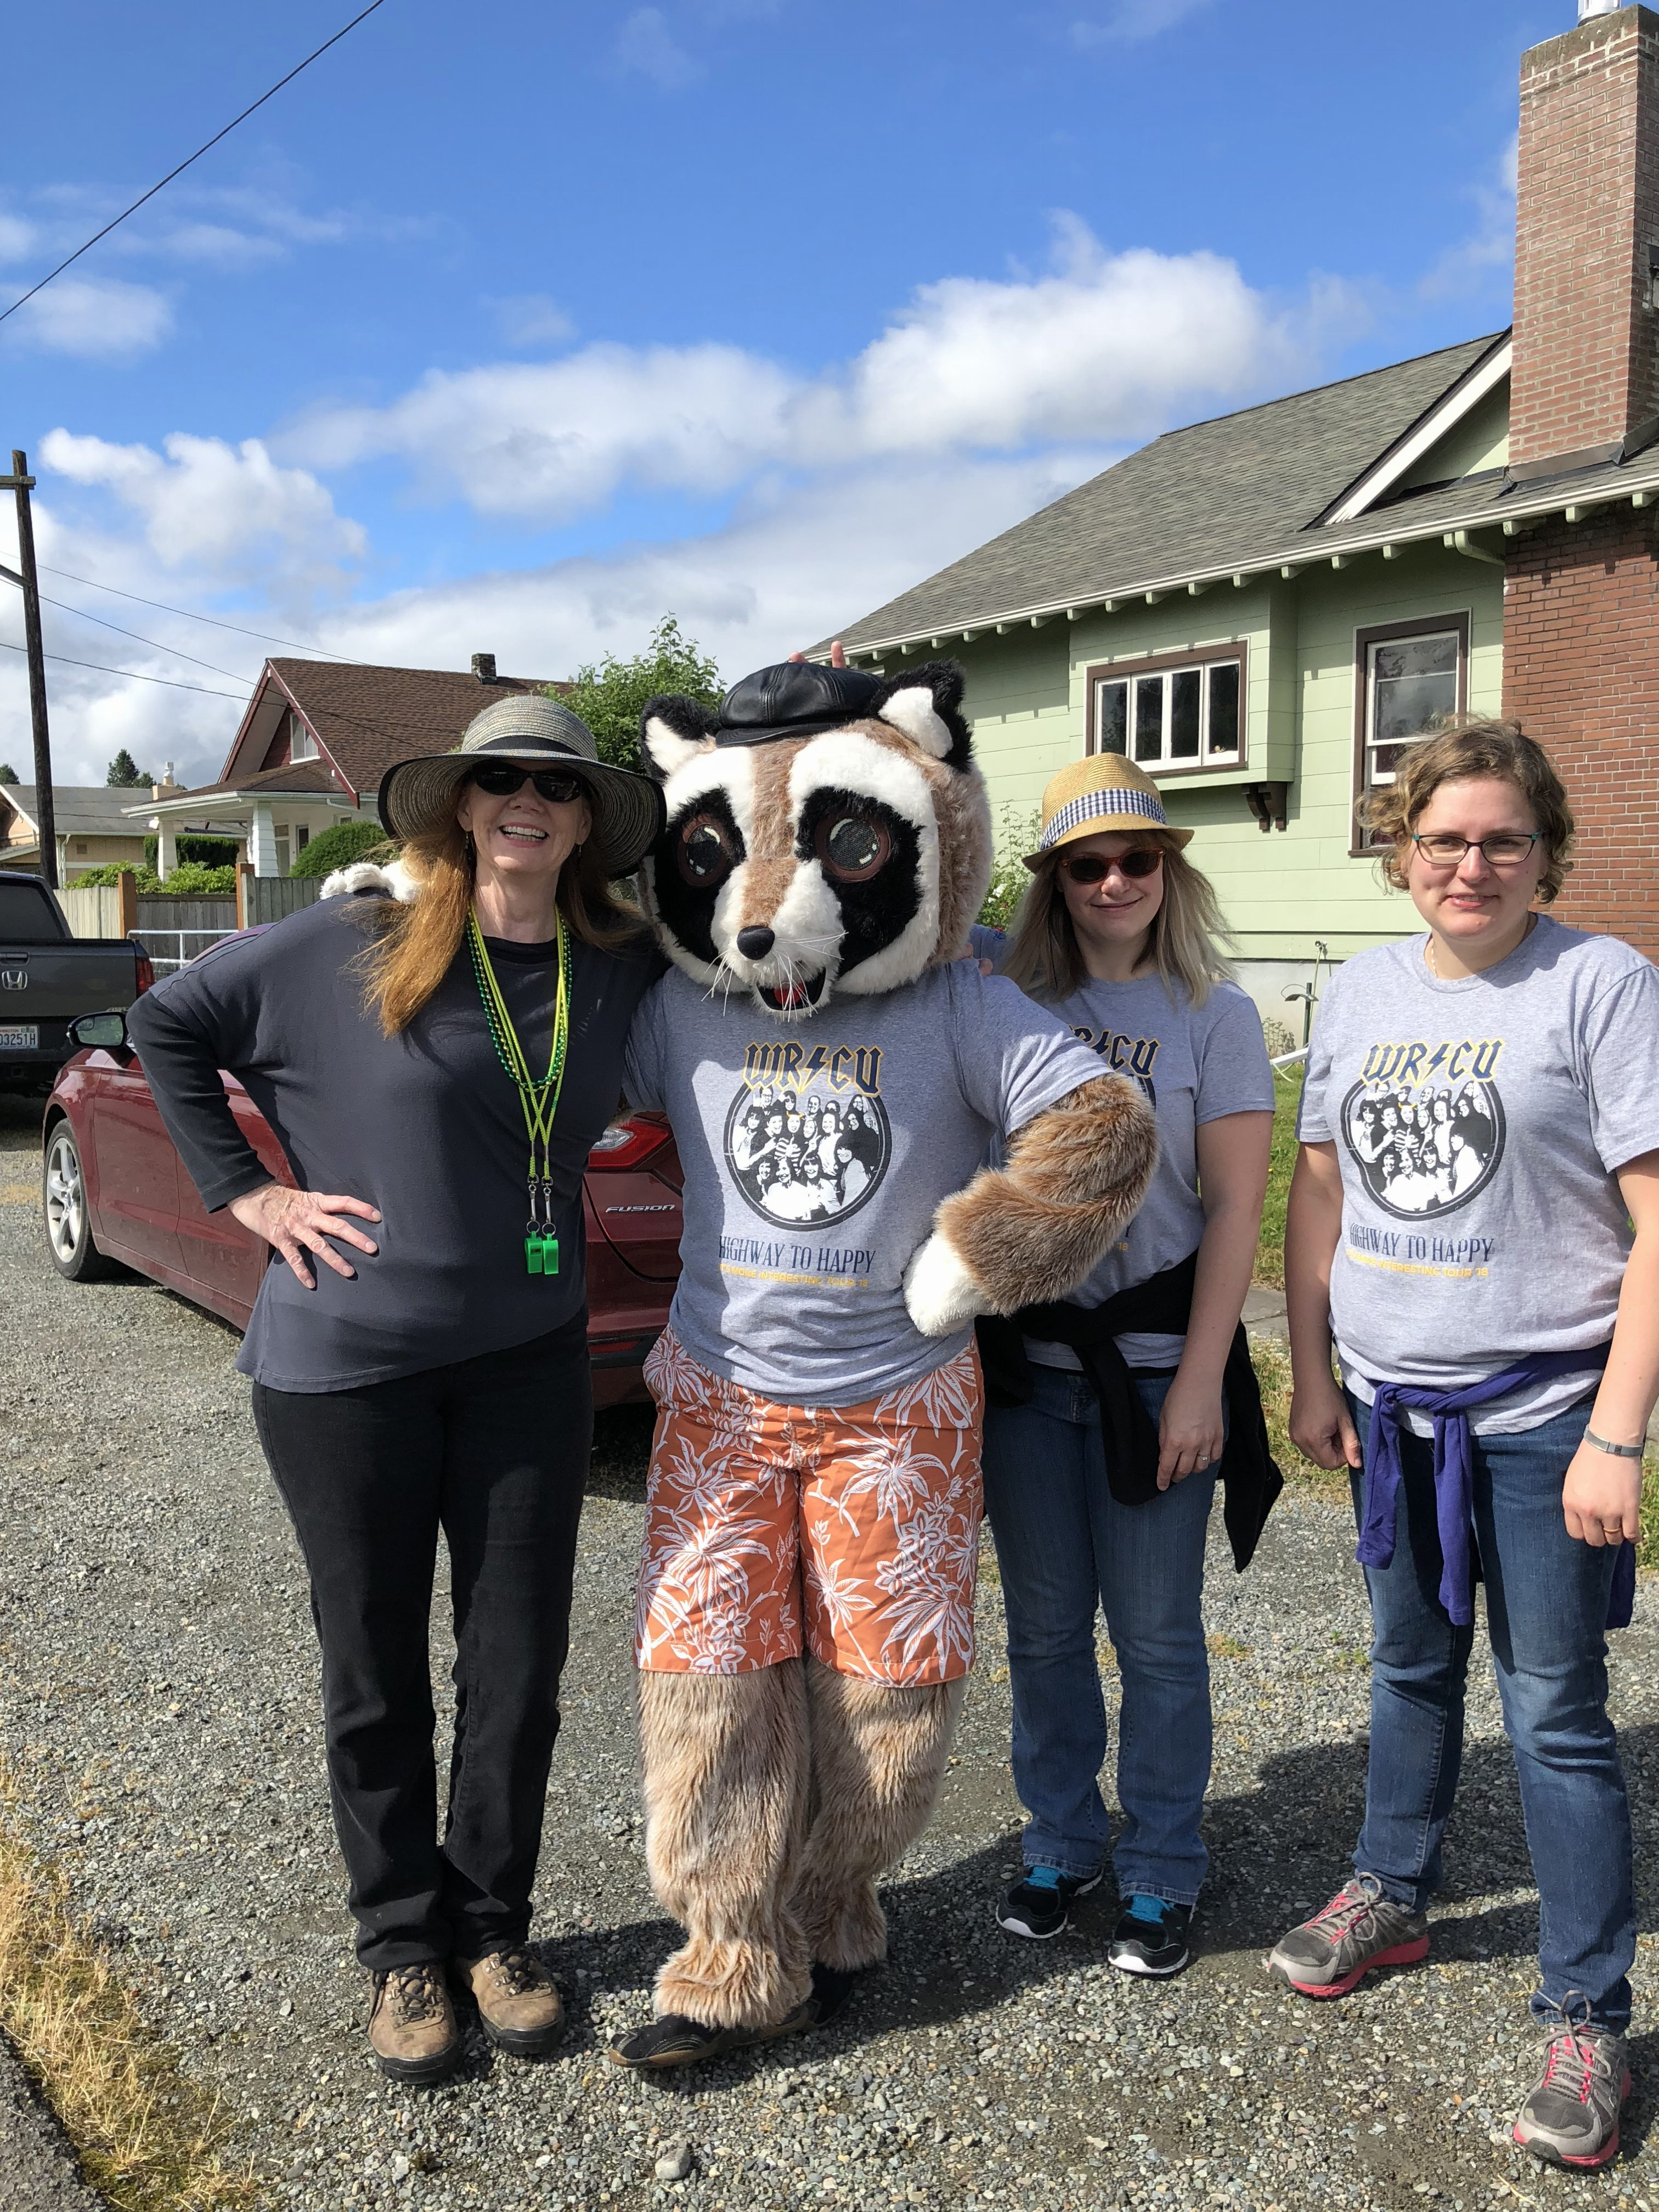 Rocky the Raccoon posing with three event attendees who are wearing WRCU t-shirts